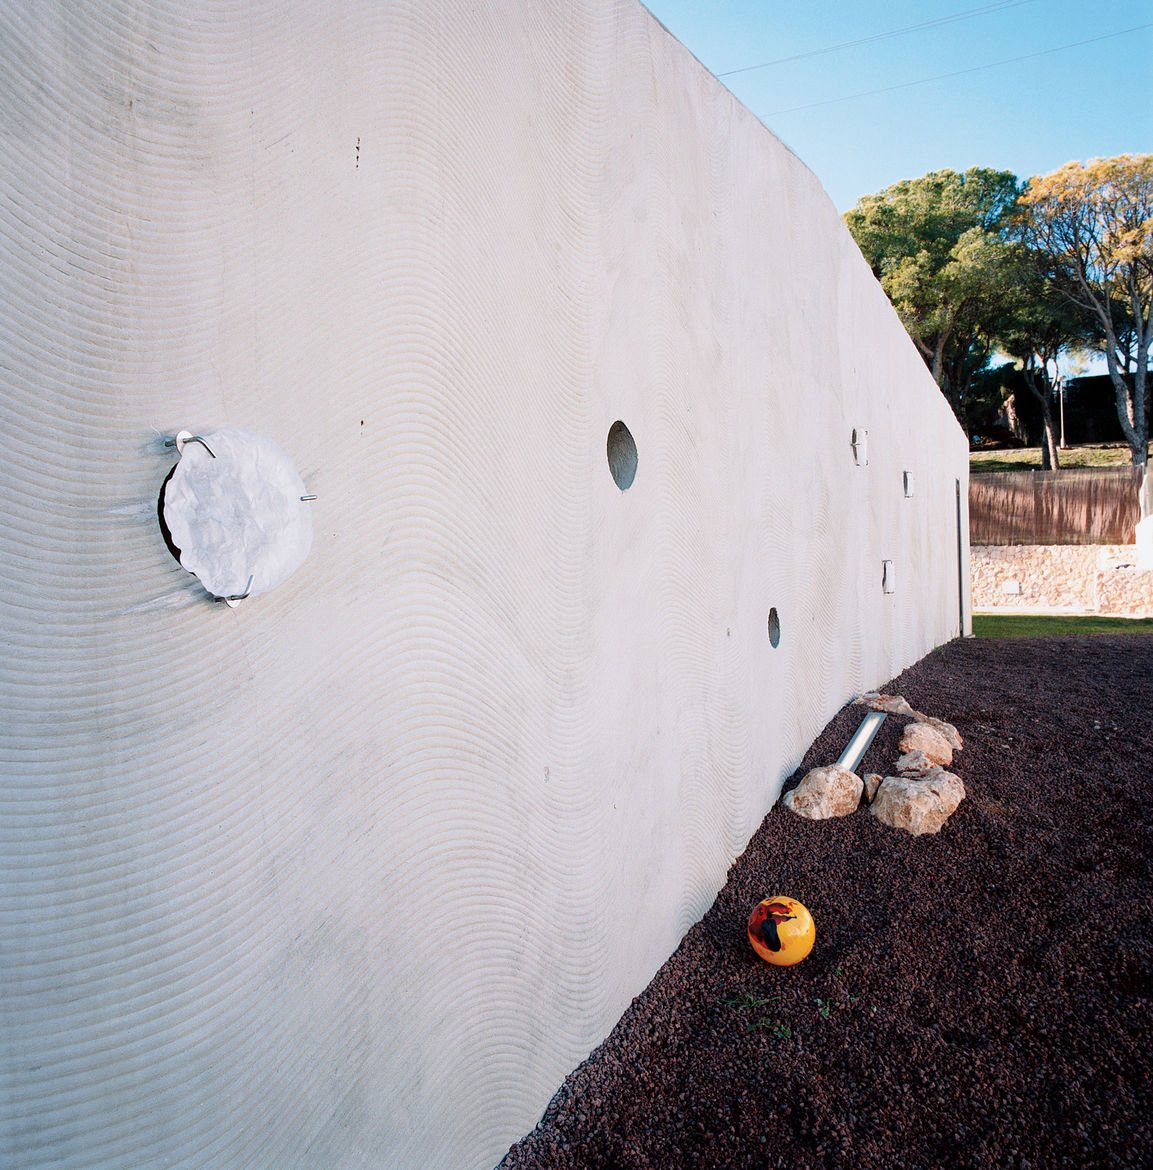 A CNC-cut formwork was used to create the wavy pattern in the home's concrete outer walls.